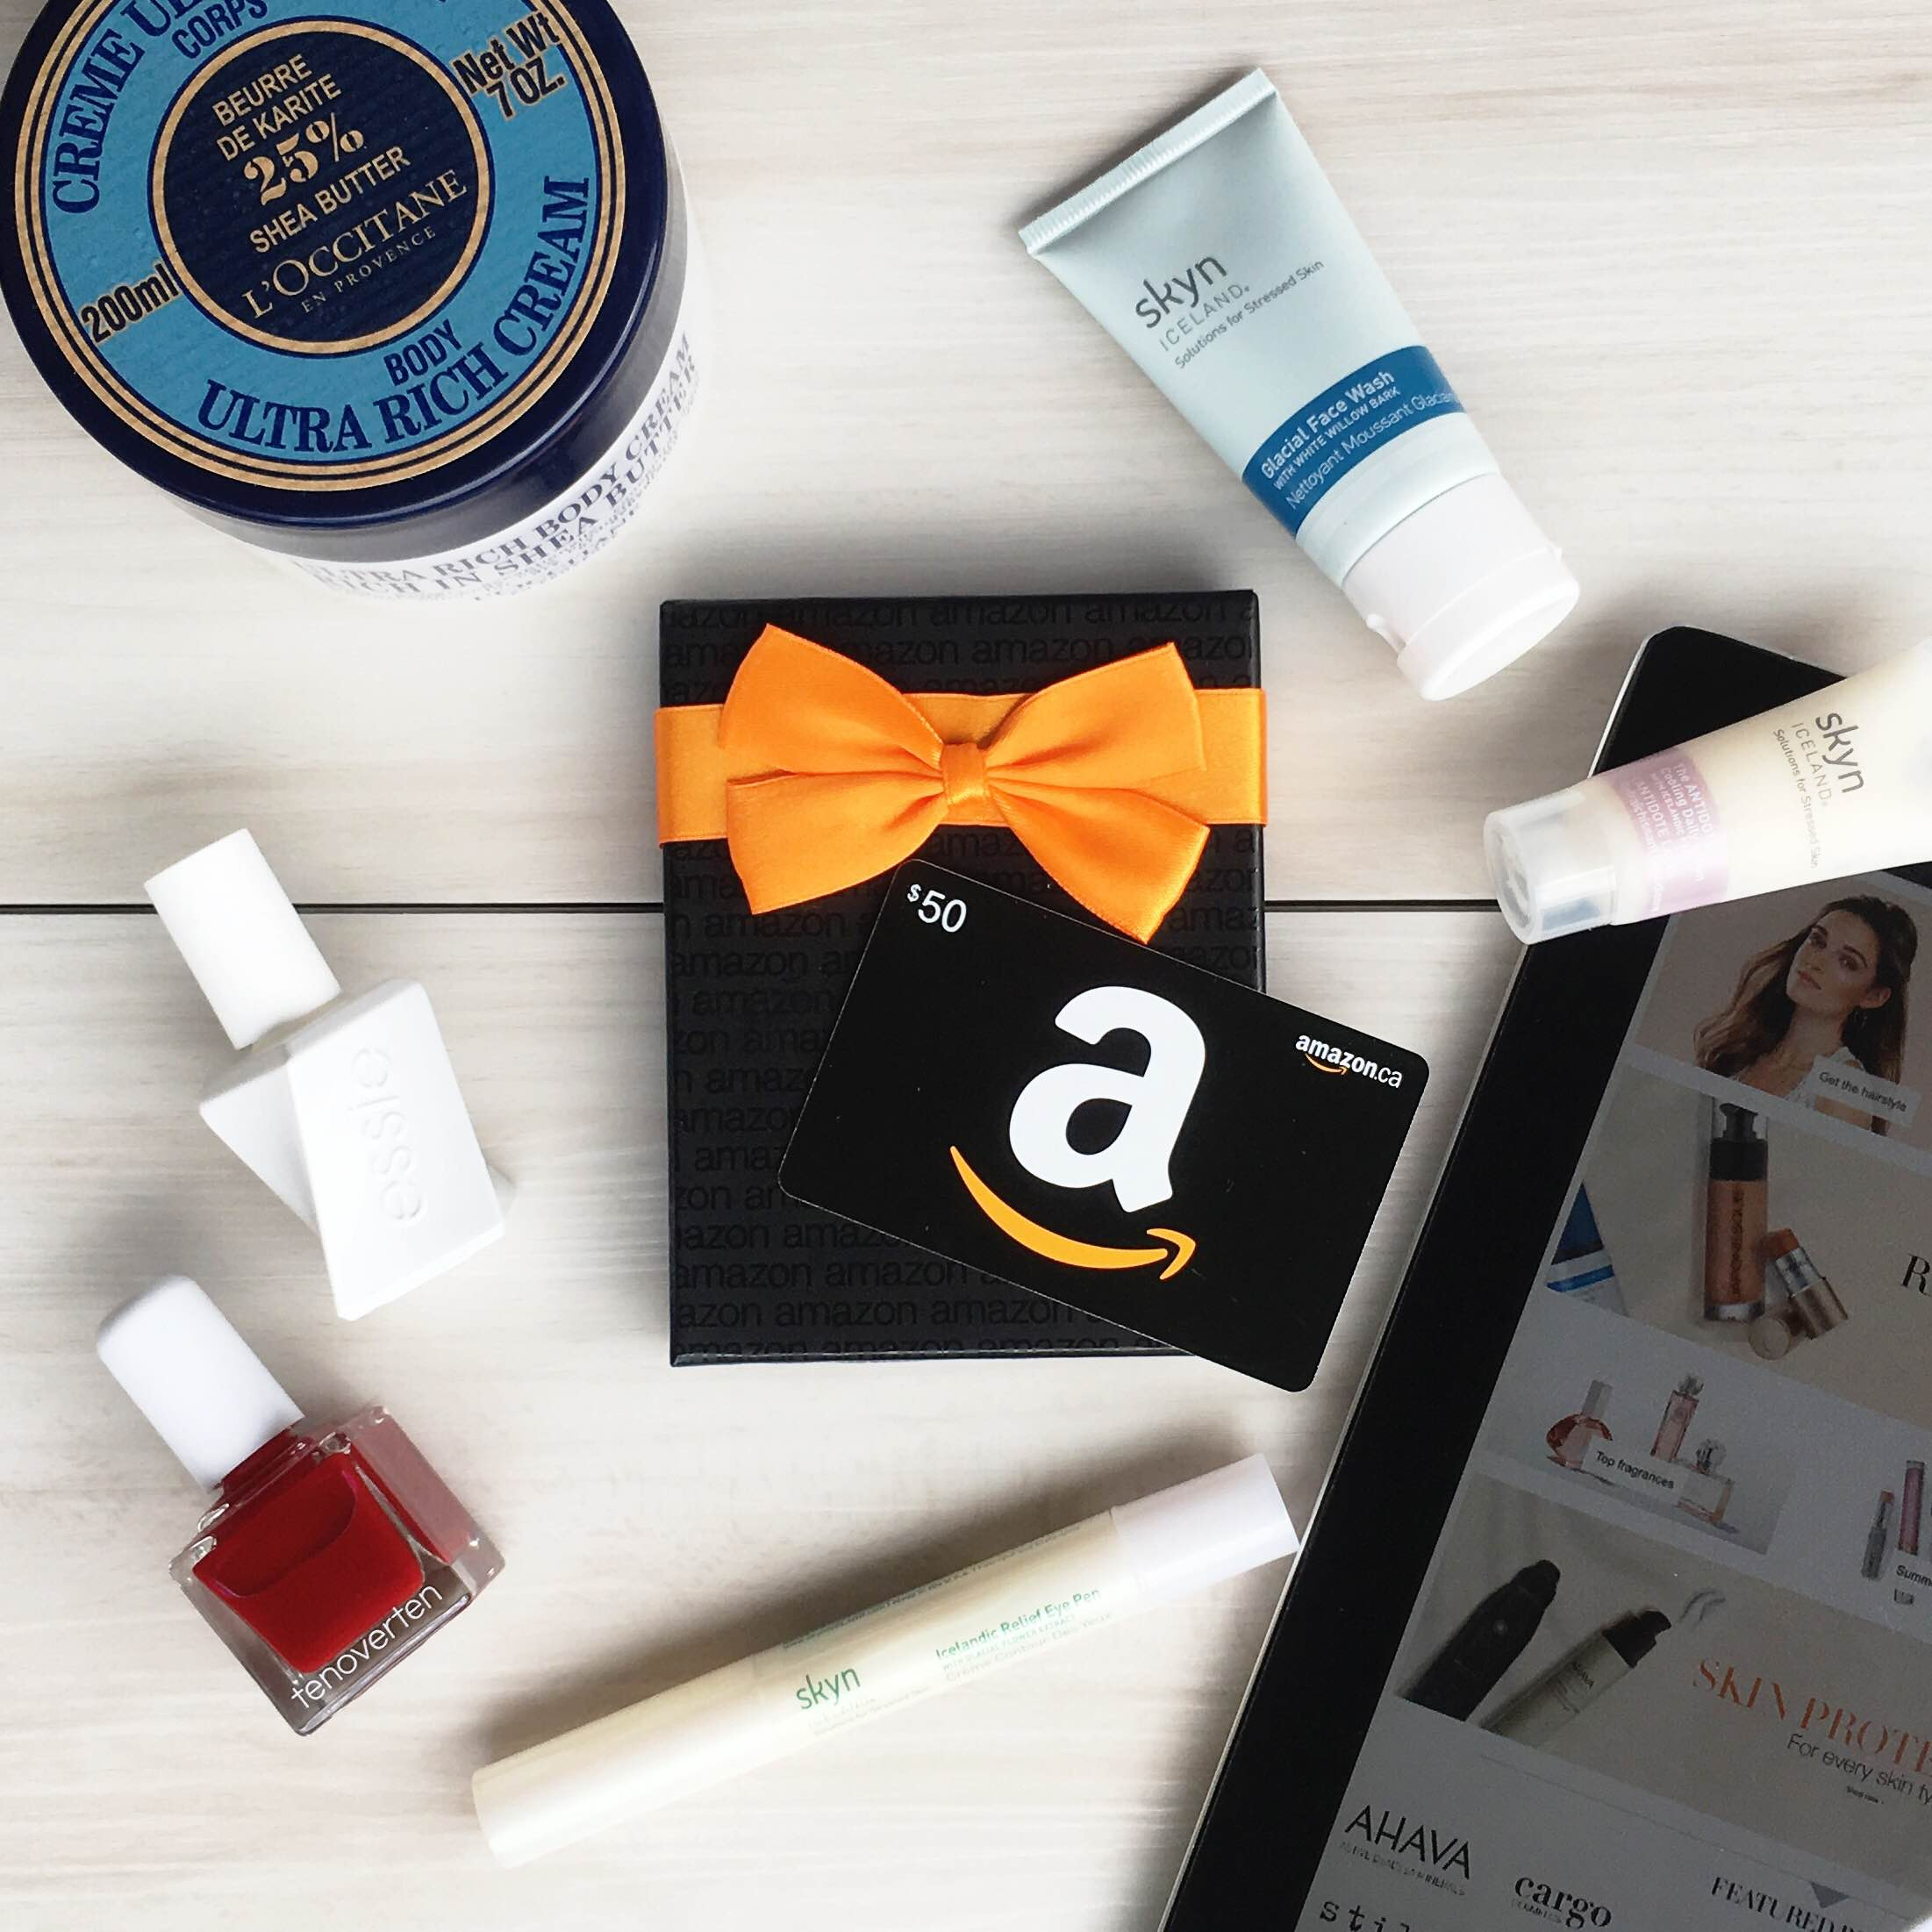 amazon lux beauty, amazon beauty shopping, where to buy makeup online, best beauty shopping, amazon deals, amazon beauty deals, online beauty, where to buy tenoverten,